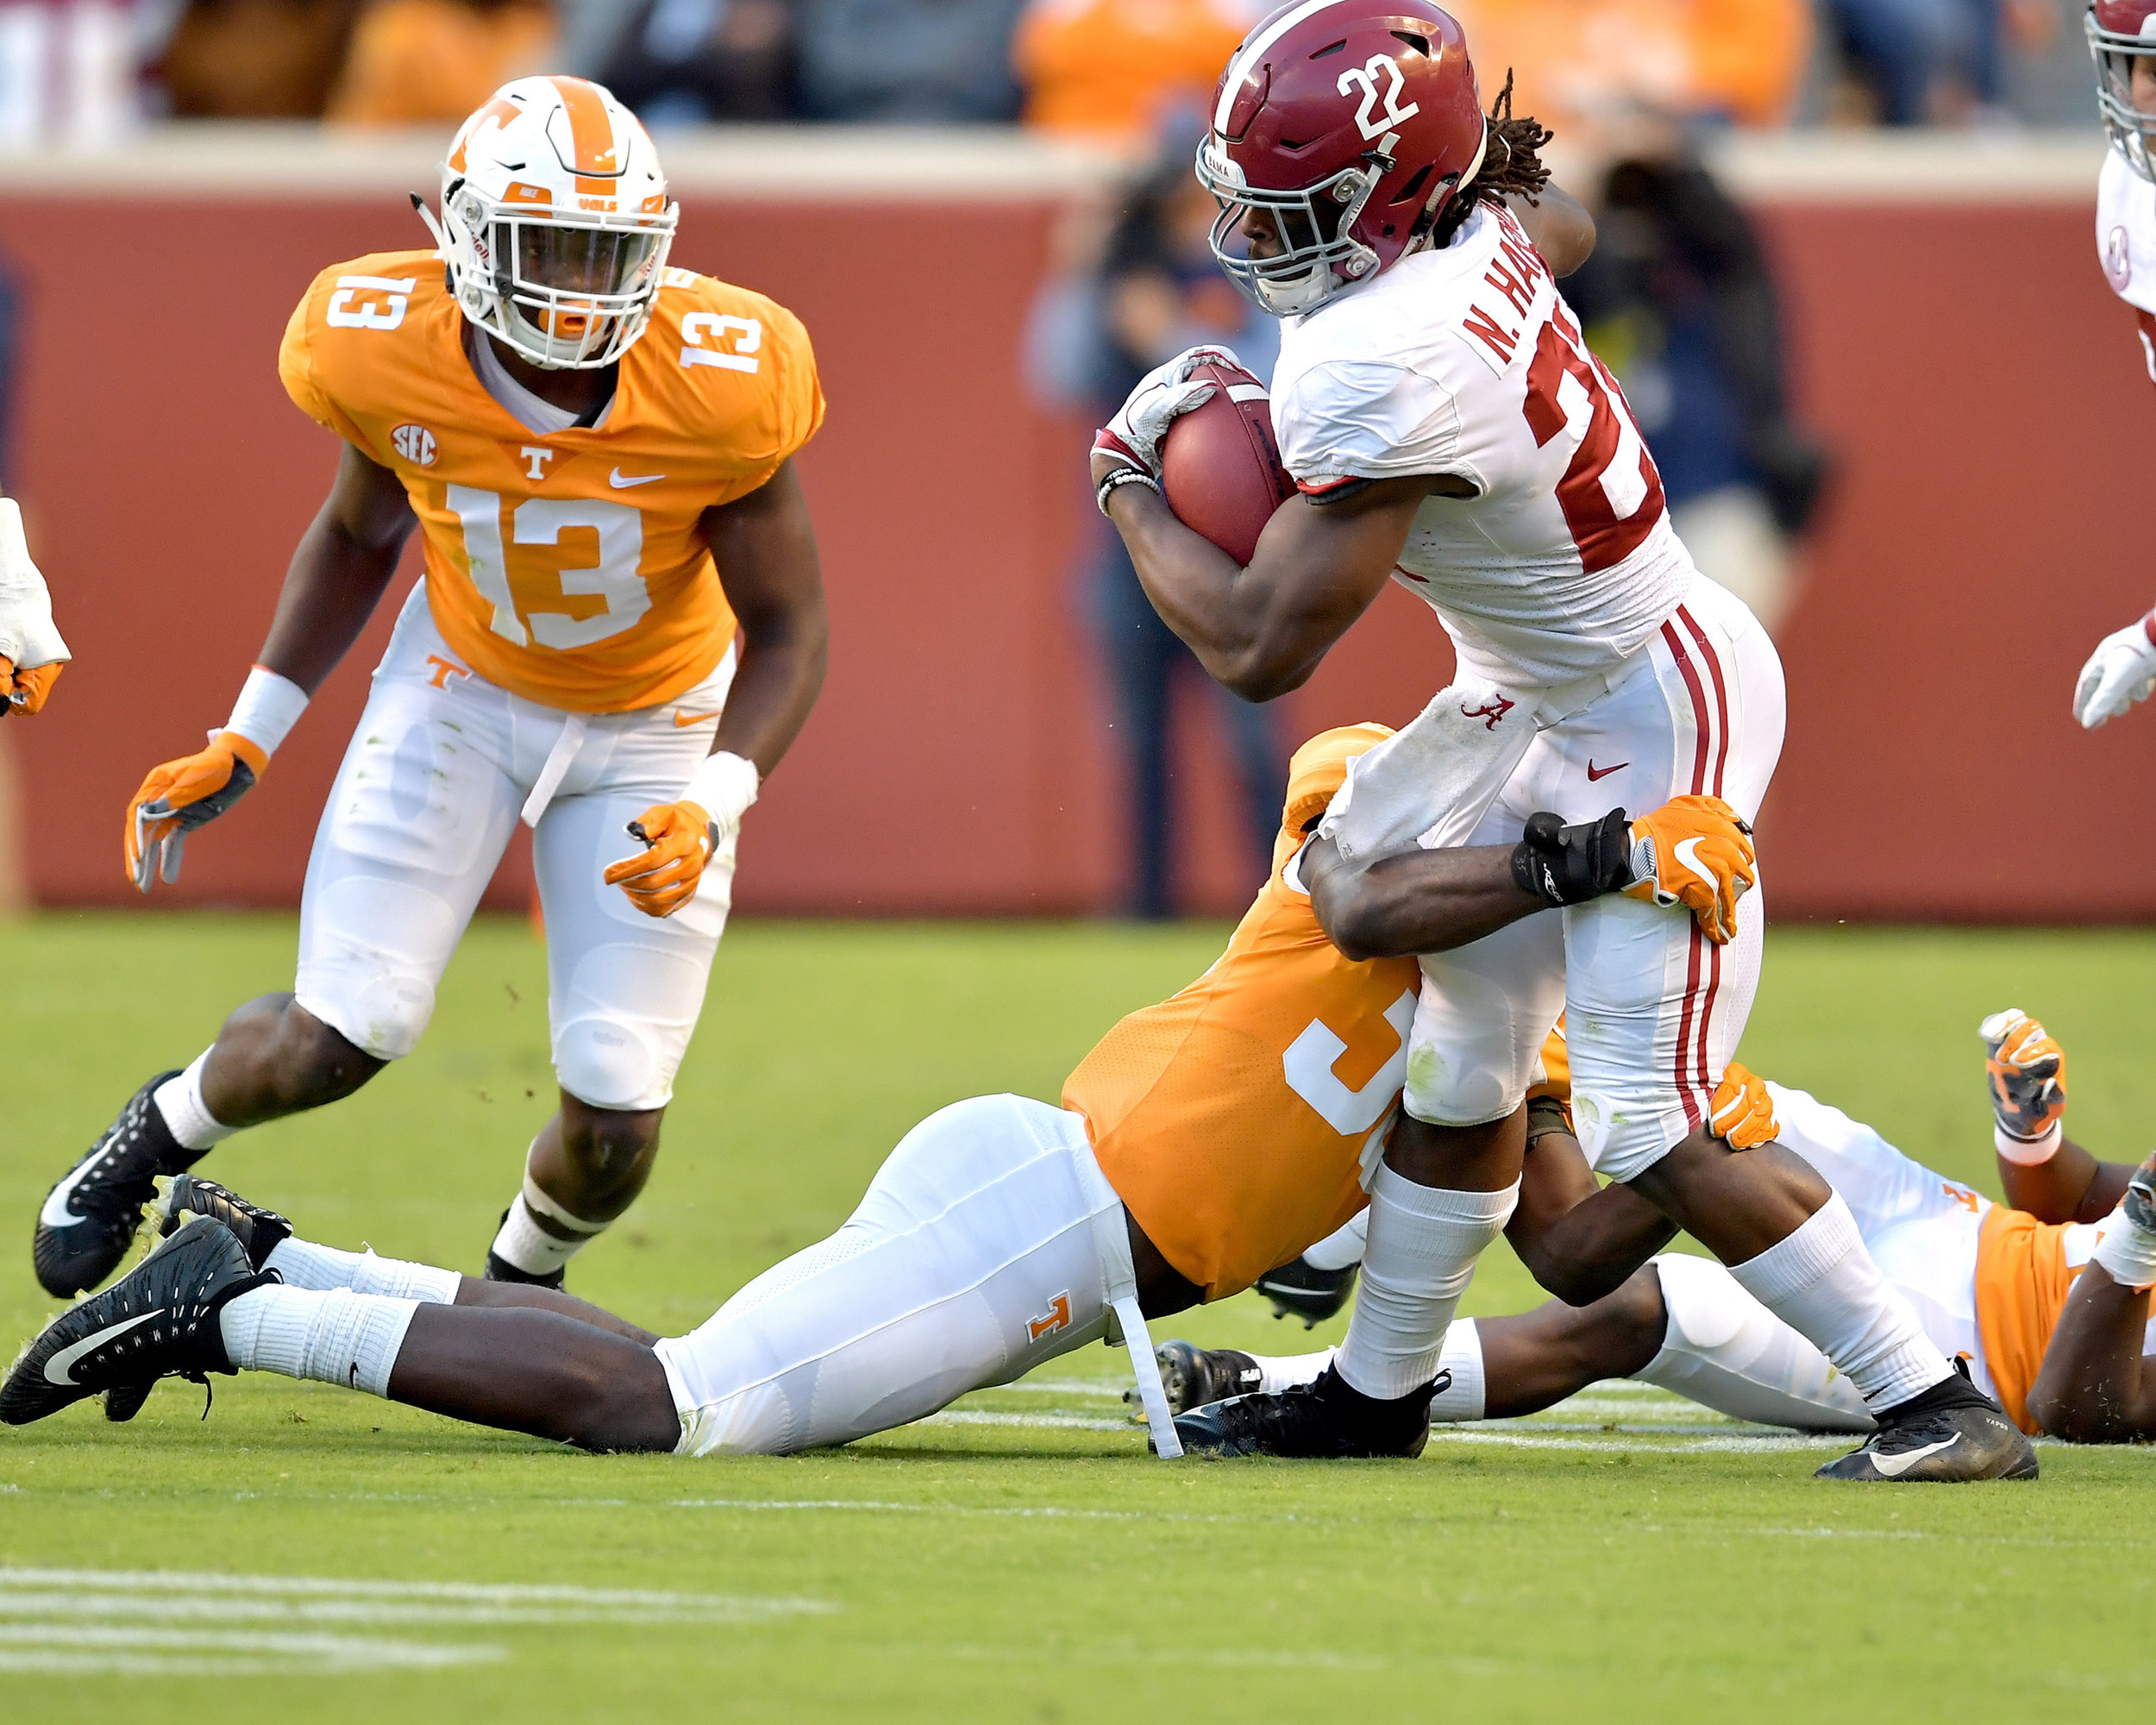 Alabama Crimson Tide running back Najee Harris (22) with a carry in the third quarter of the Alabama at Tennessee NCAA football game on Saturday, Oct. 20, 2018, at Neyland Stadium in Knoxville. Tenn. Alabama wins 58-21. (Photo by Lee Walls)